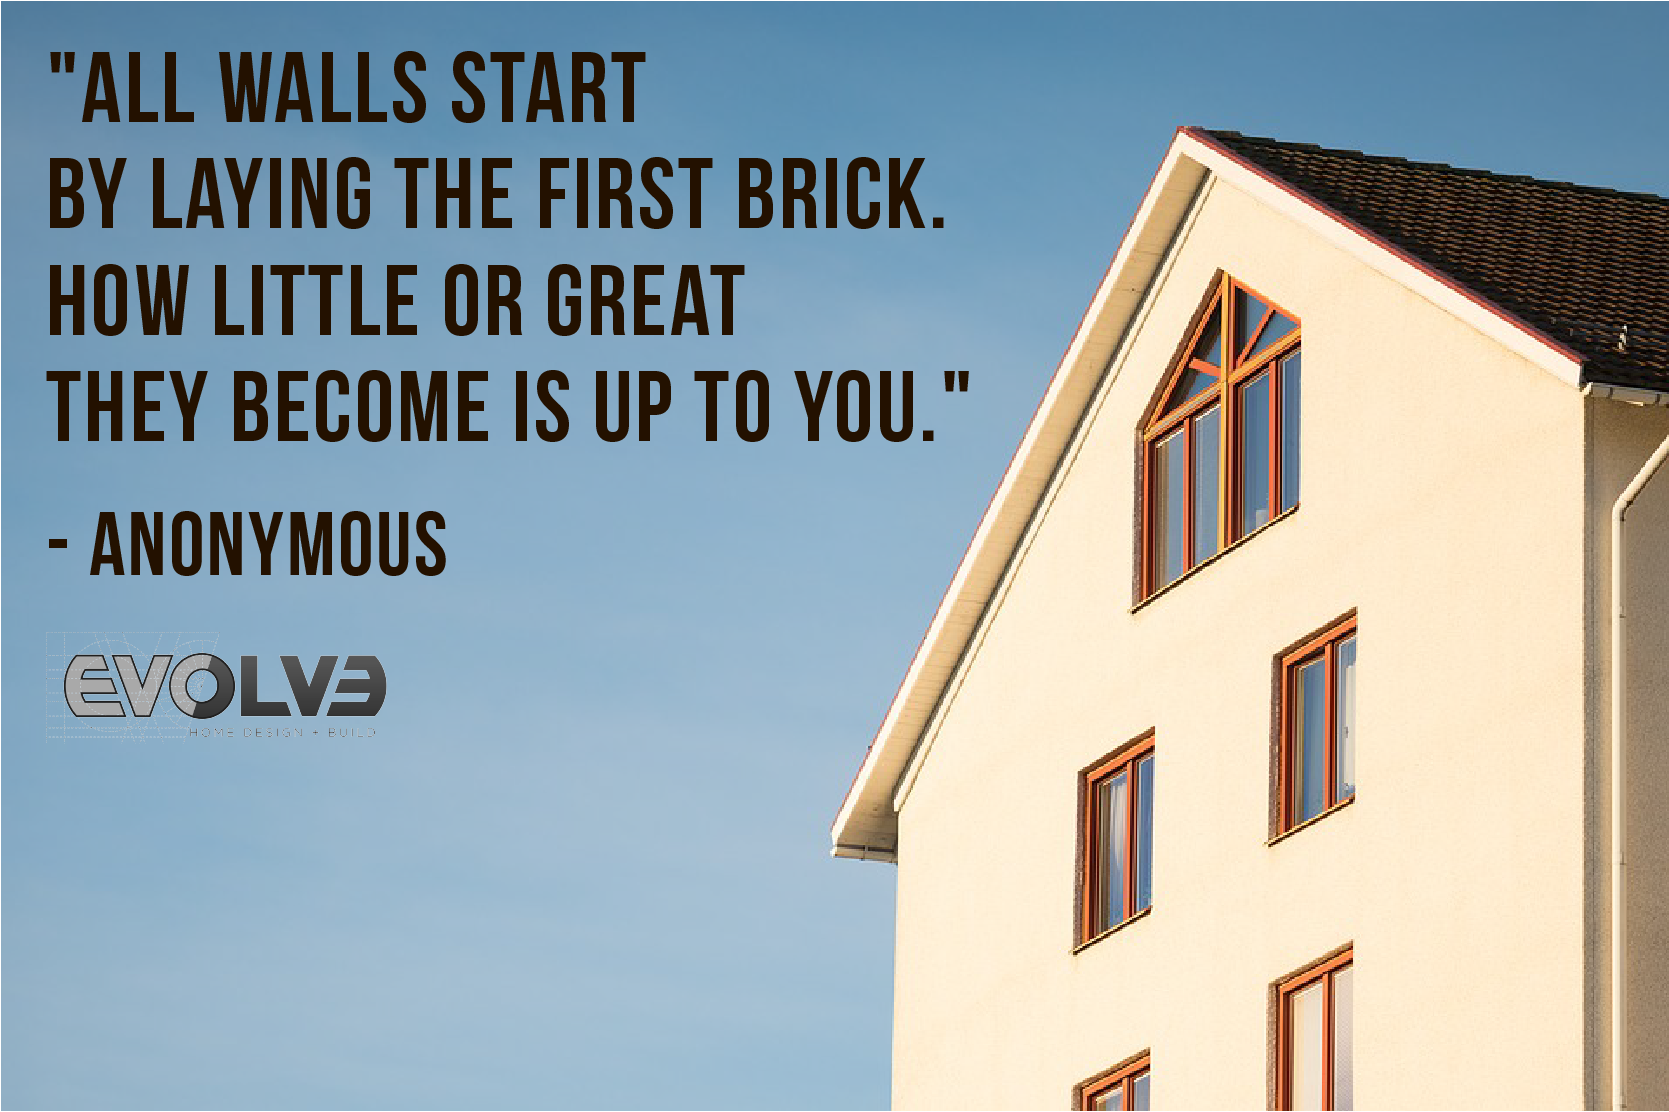 All walls start by laying the #FirstBrick. How #Little or ...